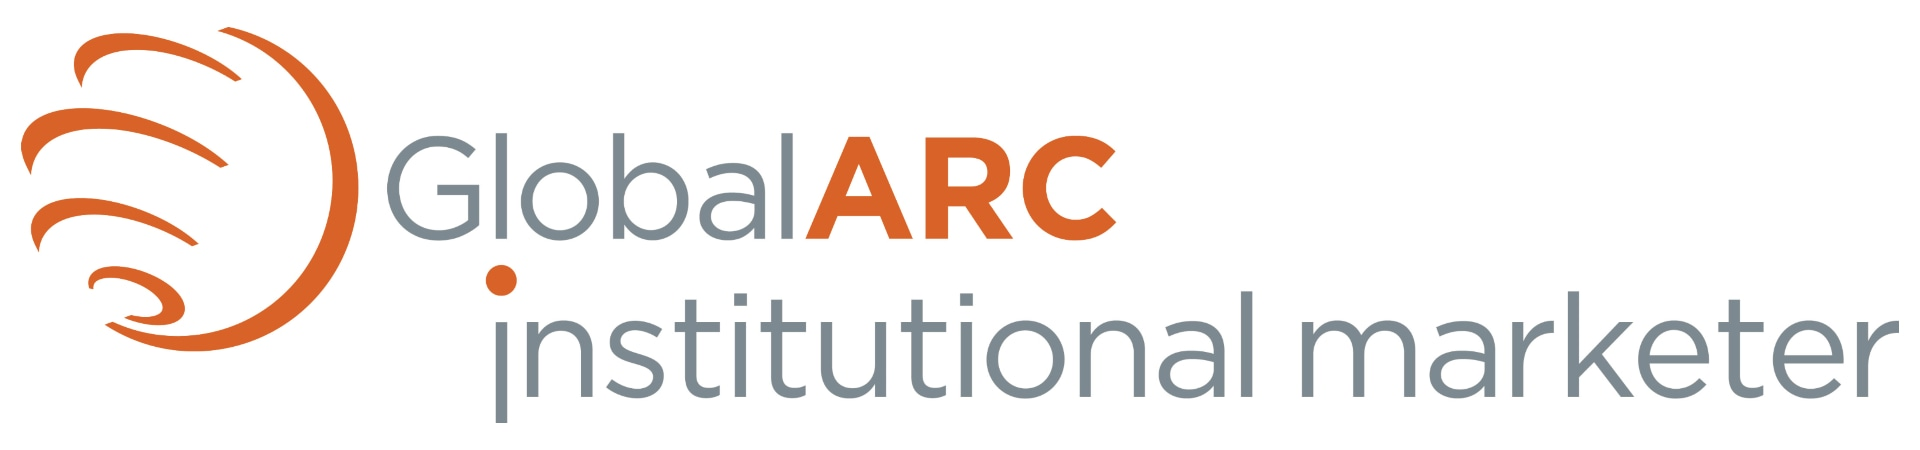 Global ARC Institutional Marketer